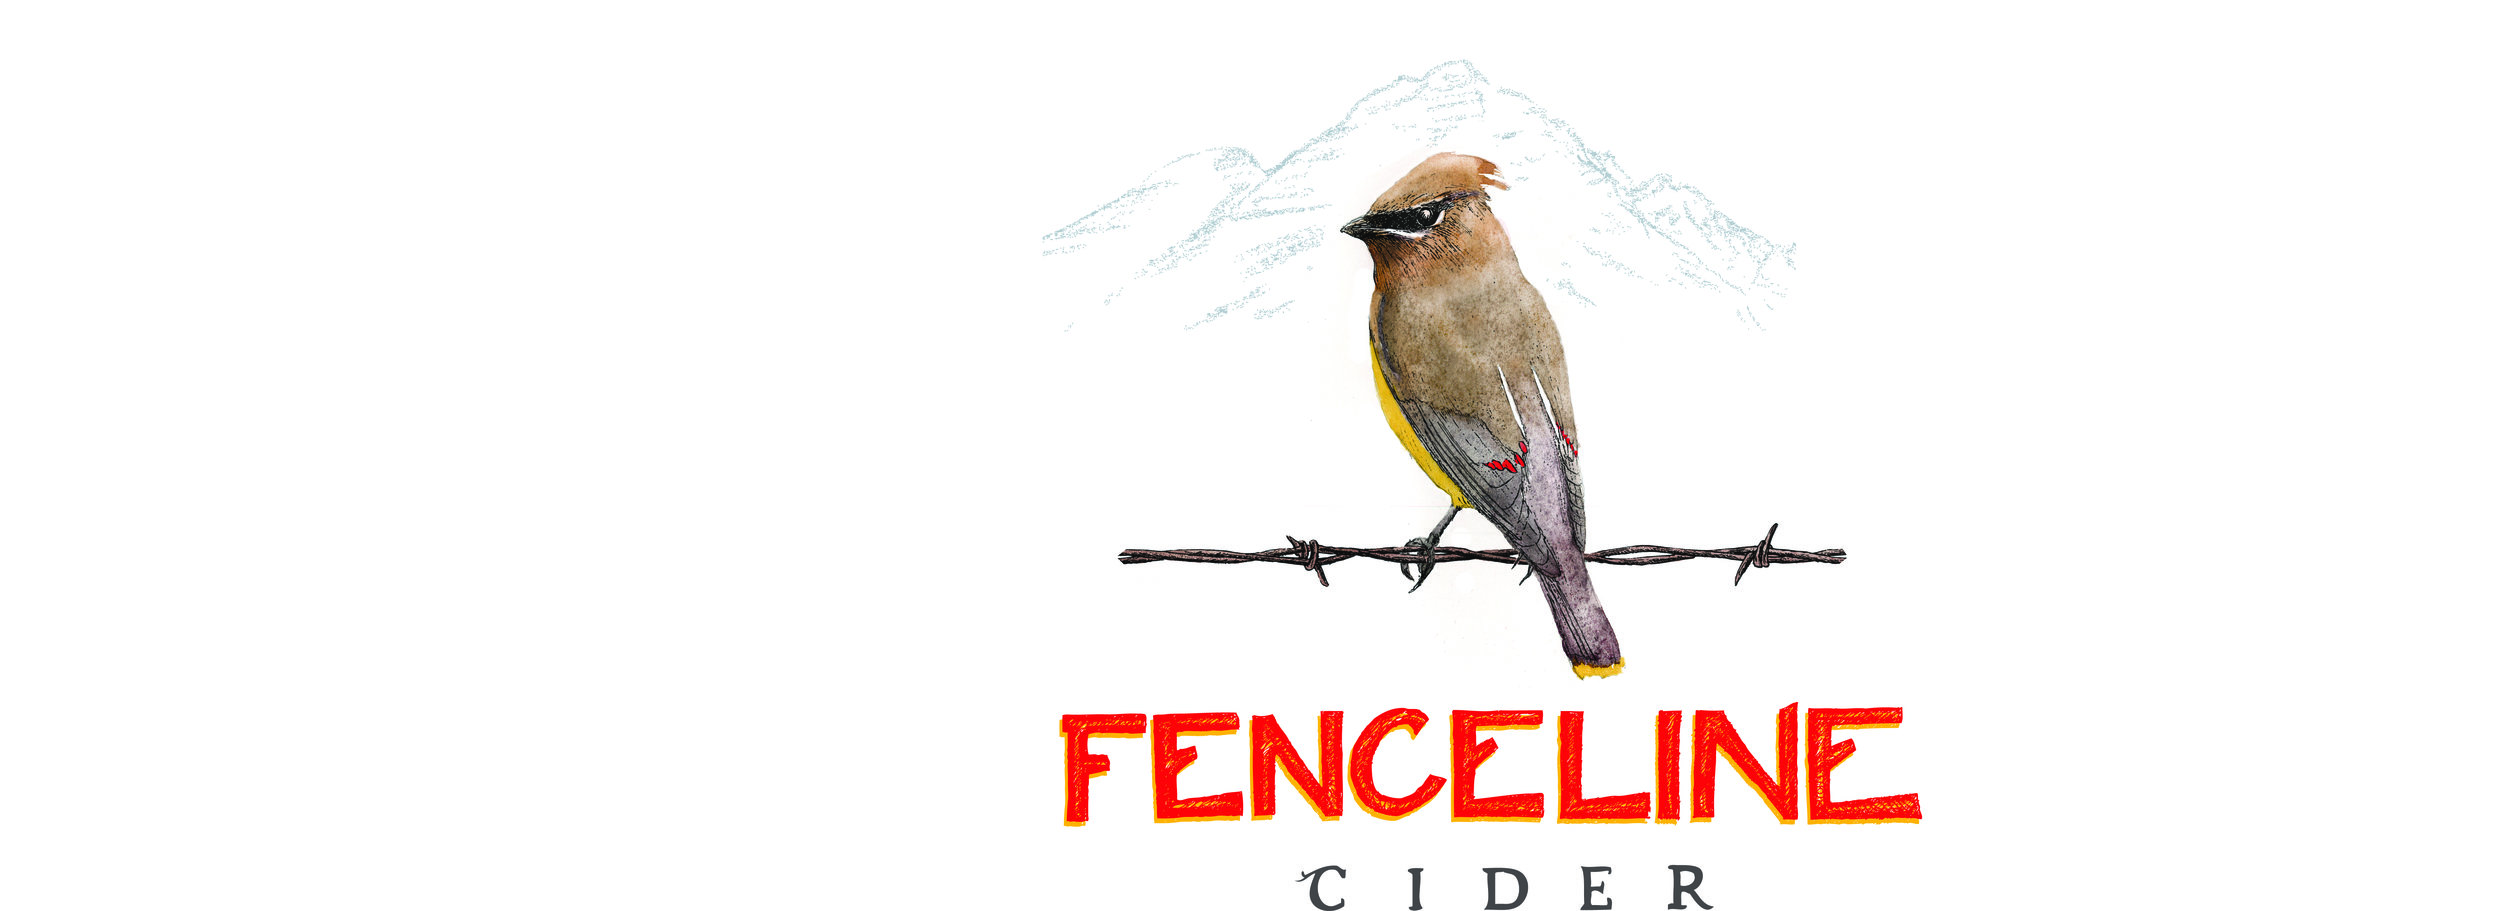 A brand new addition to the craft drink variety here,  Fenceline Cider & Outlier Cellars  offers local cider, and a beautiful outdoor patio by the river.   21+ GET:  Flight of 4 Ciders   KIDS GET:  Soda & a sticker